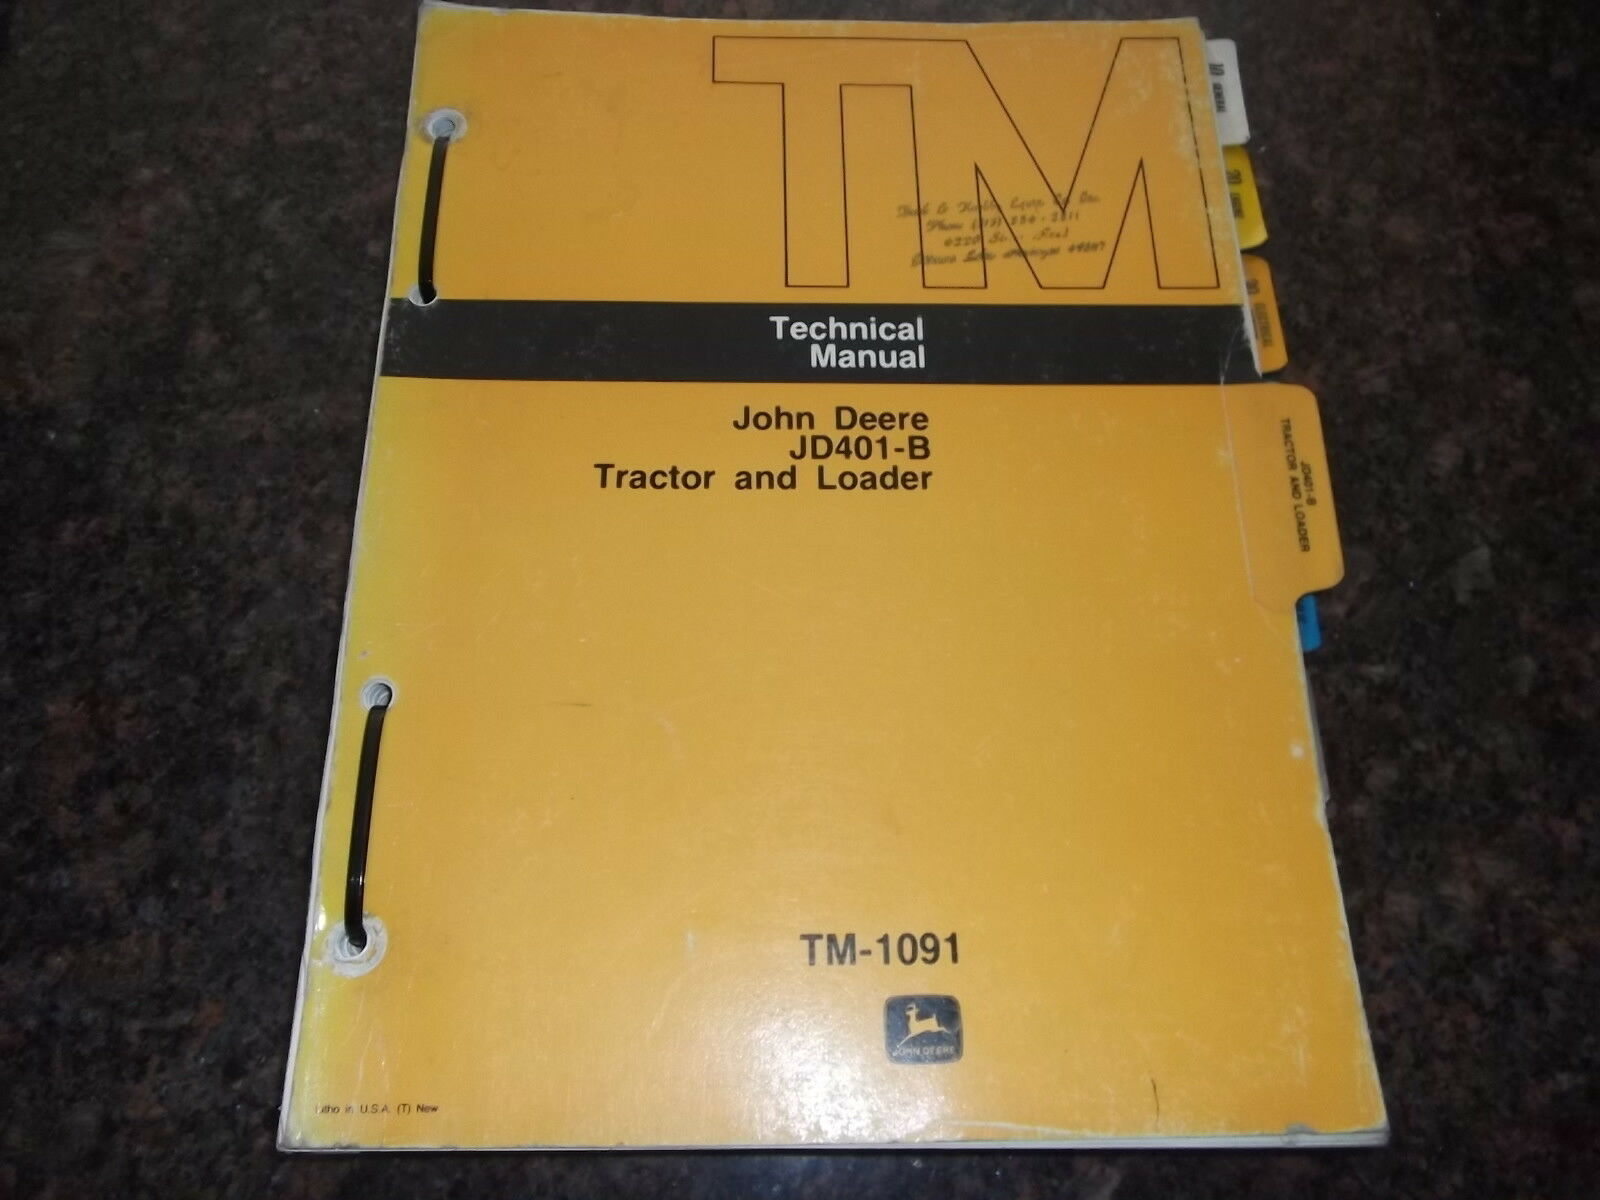 John Deere Jd401-B Tractor & Loader Service Shop Technical Repair Manual  Tm-1091 1 of 3Only 2 available John Deere ...